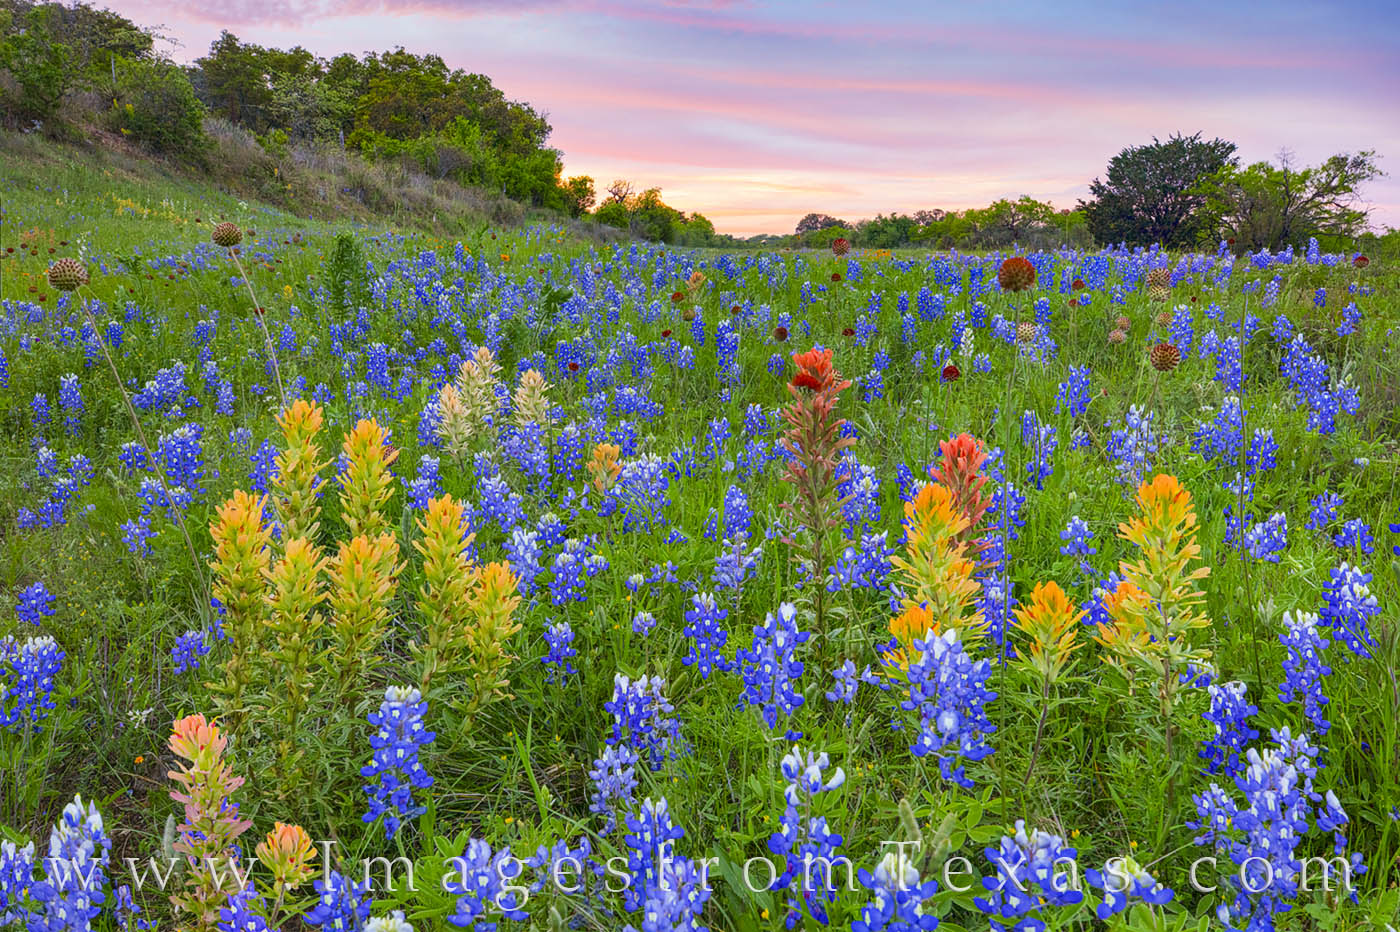 bluebonnets, prarie paintbrush, wildflowers, hill country, wildflowers prints, bluebonnet prints, sunset, spring, photo